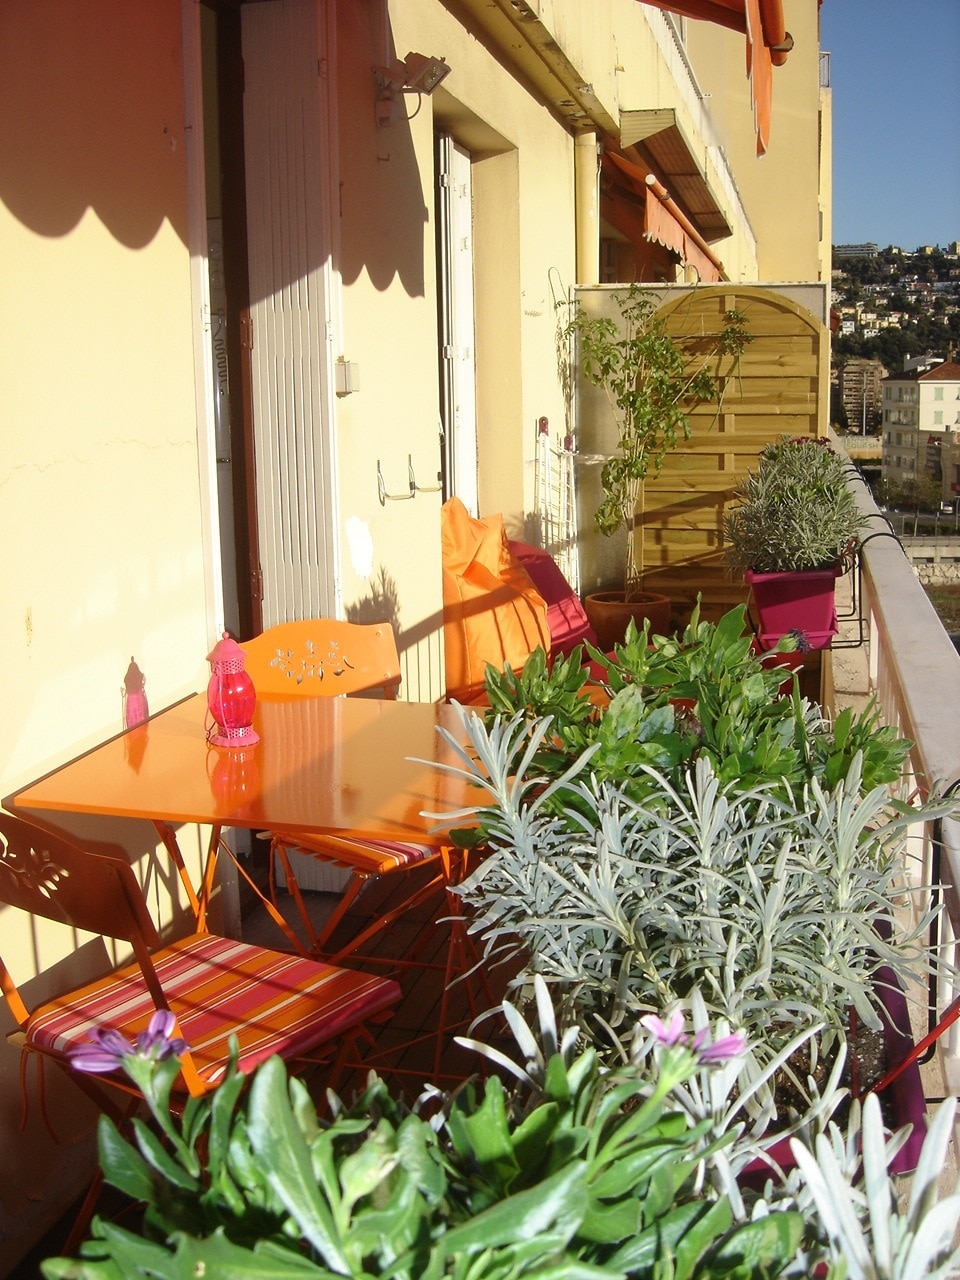 very sunny  and flowered terrasse